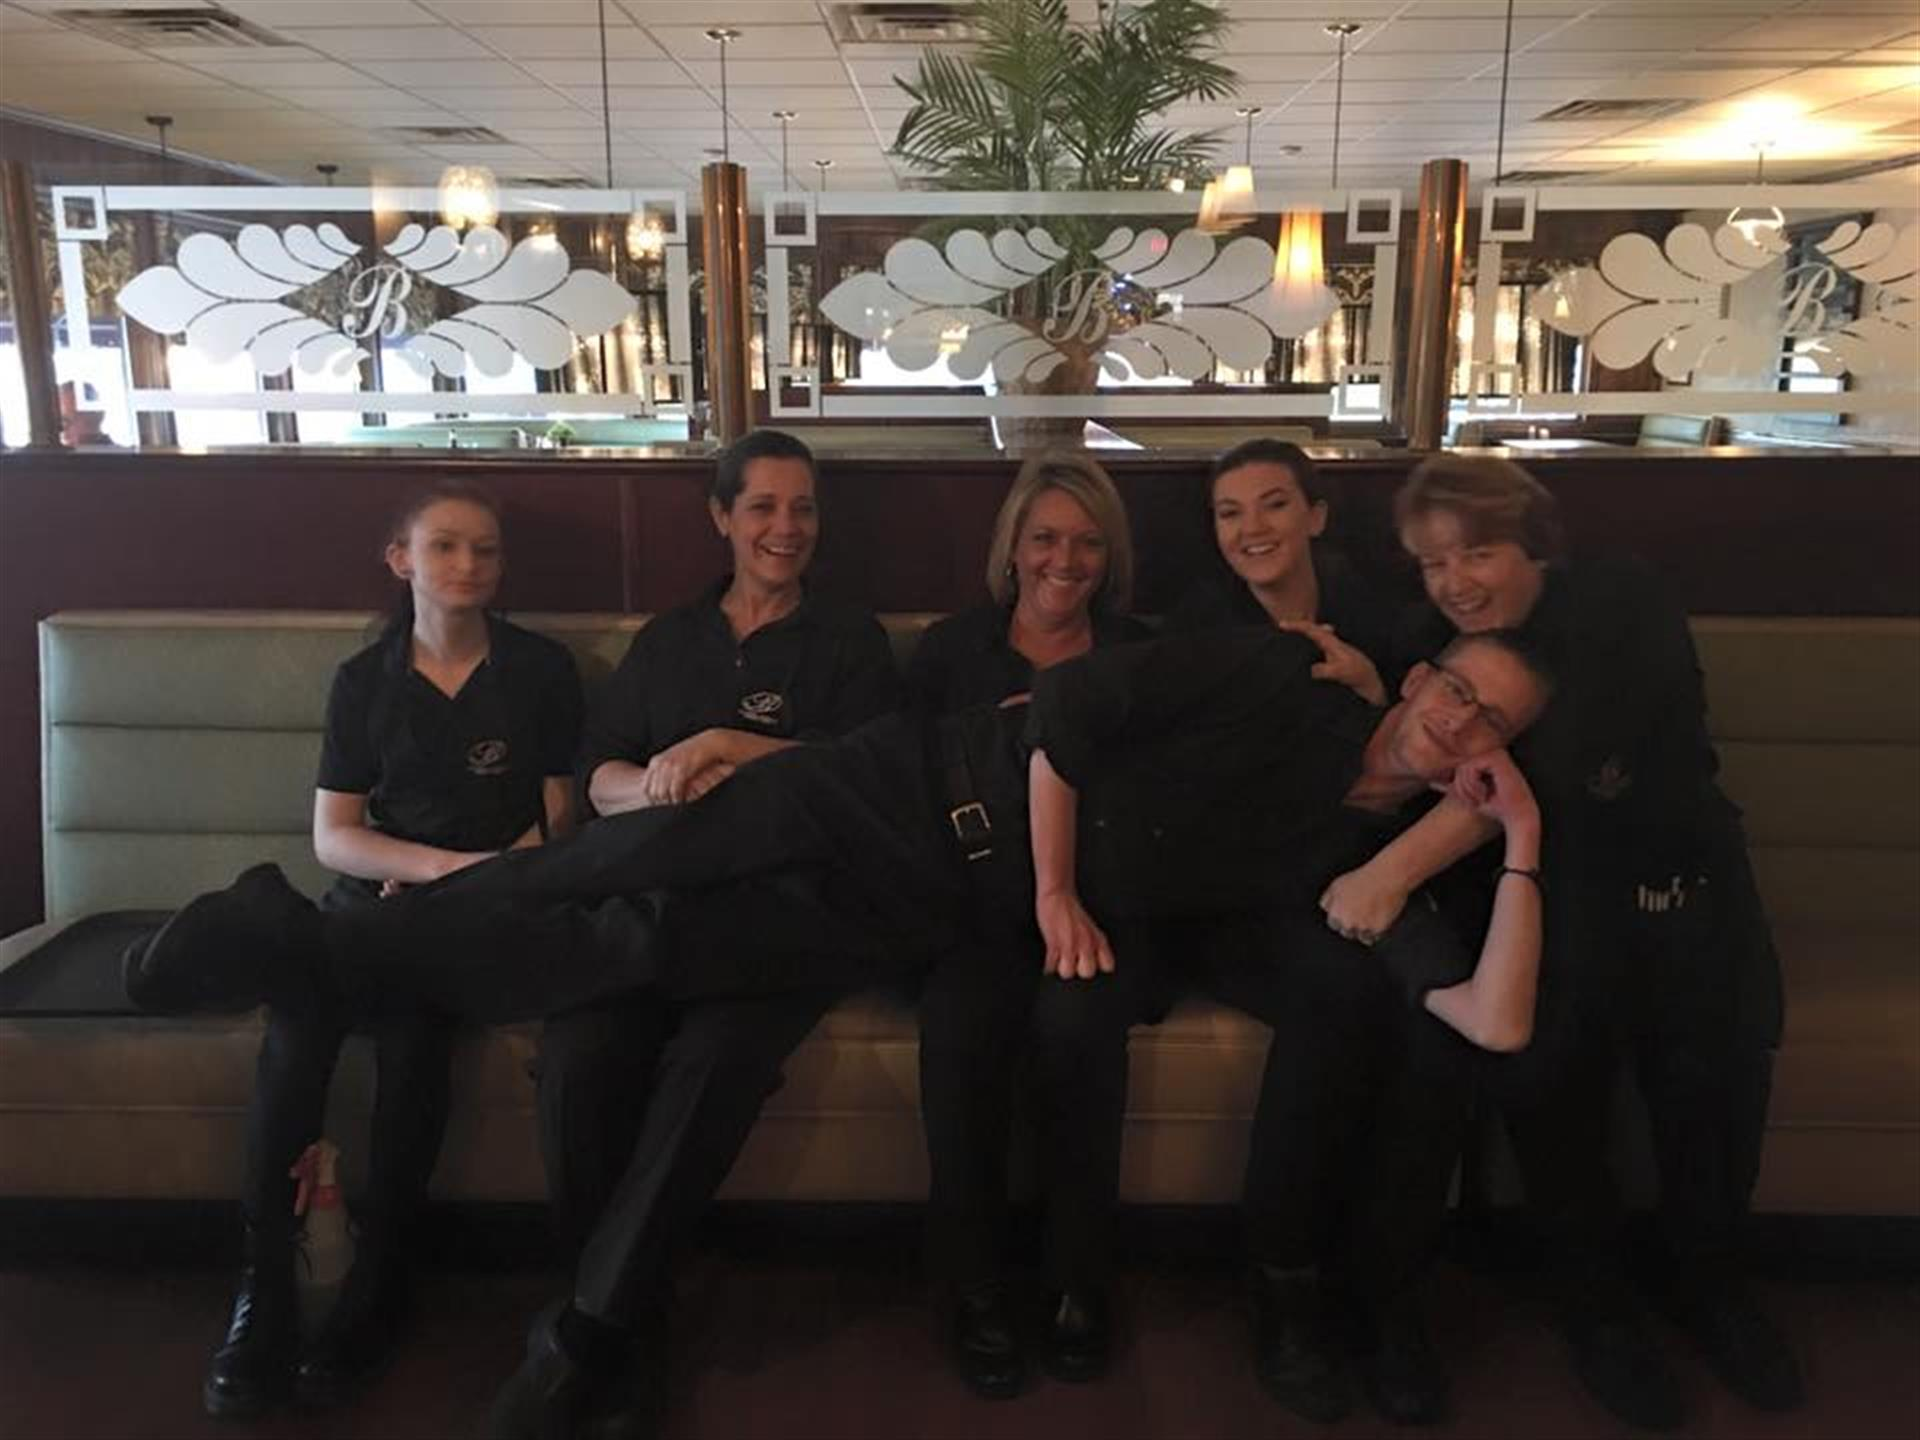 Wait staff posing for photo on waiting bench